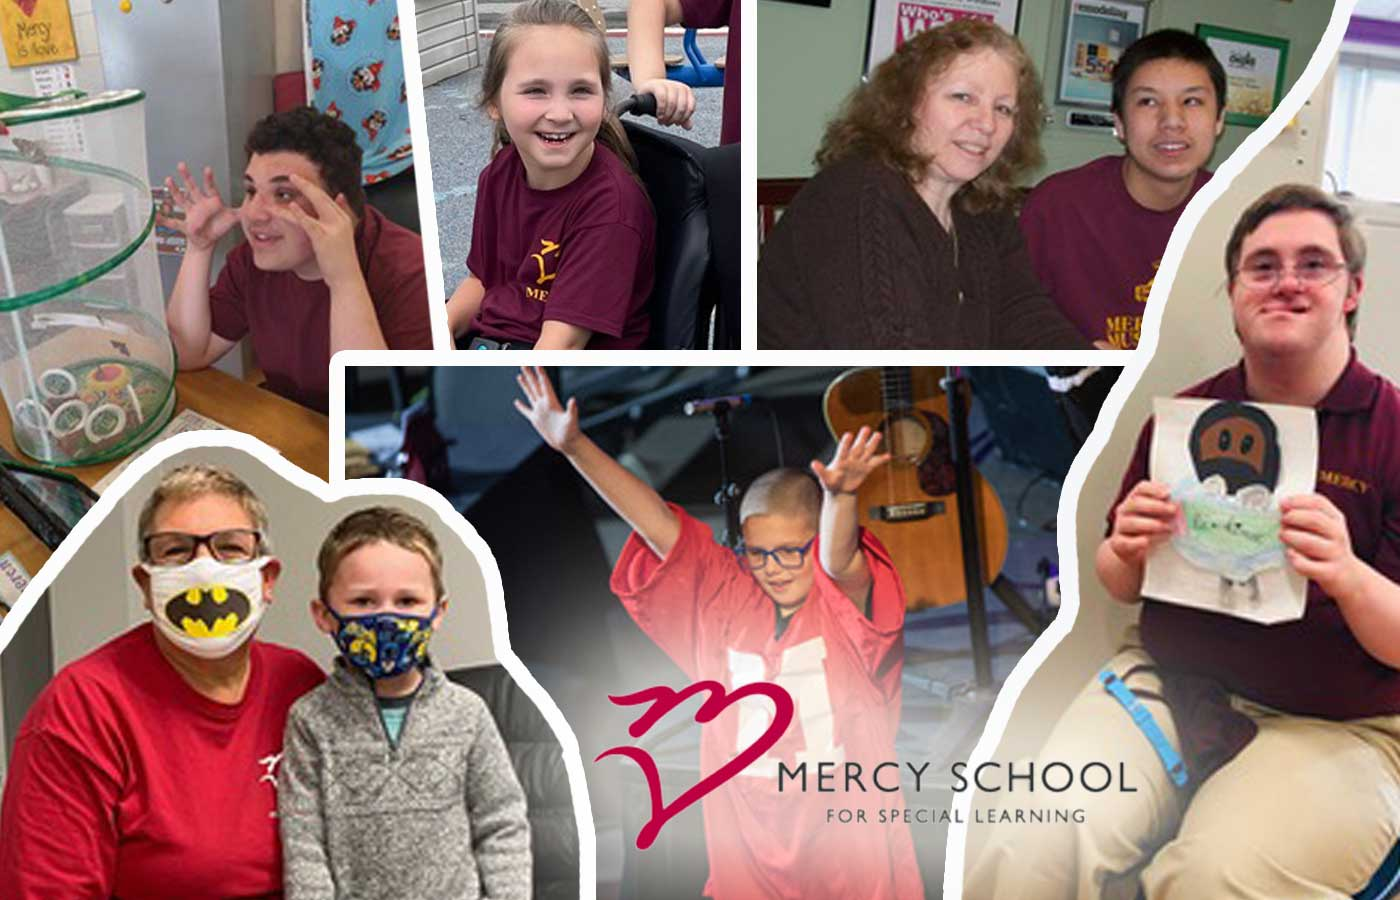 images of students from Mercy School in Allentown, PA. Used with permission 2021.